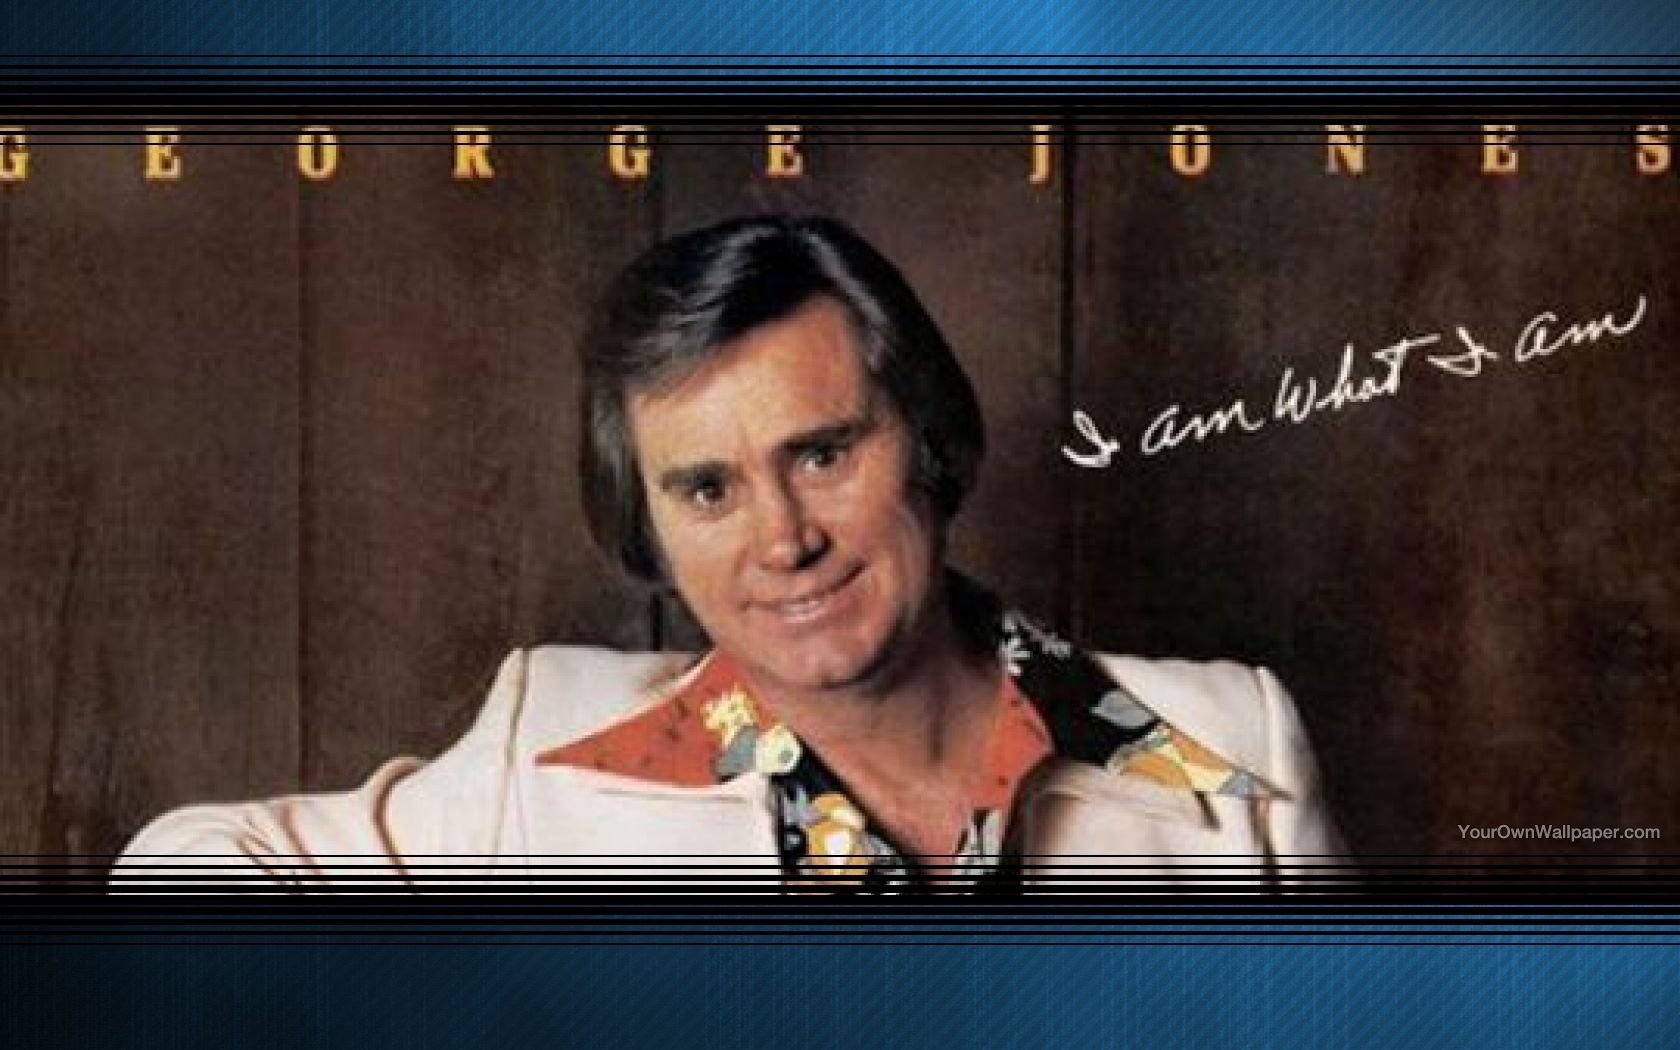 To set this George Jones Photos as wallpaper background on your Desktop, SmartPhone, Tablet, Laptop, iphone, ipad click above to open in a new window in ...